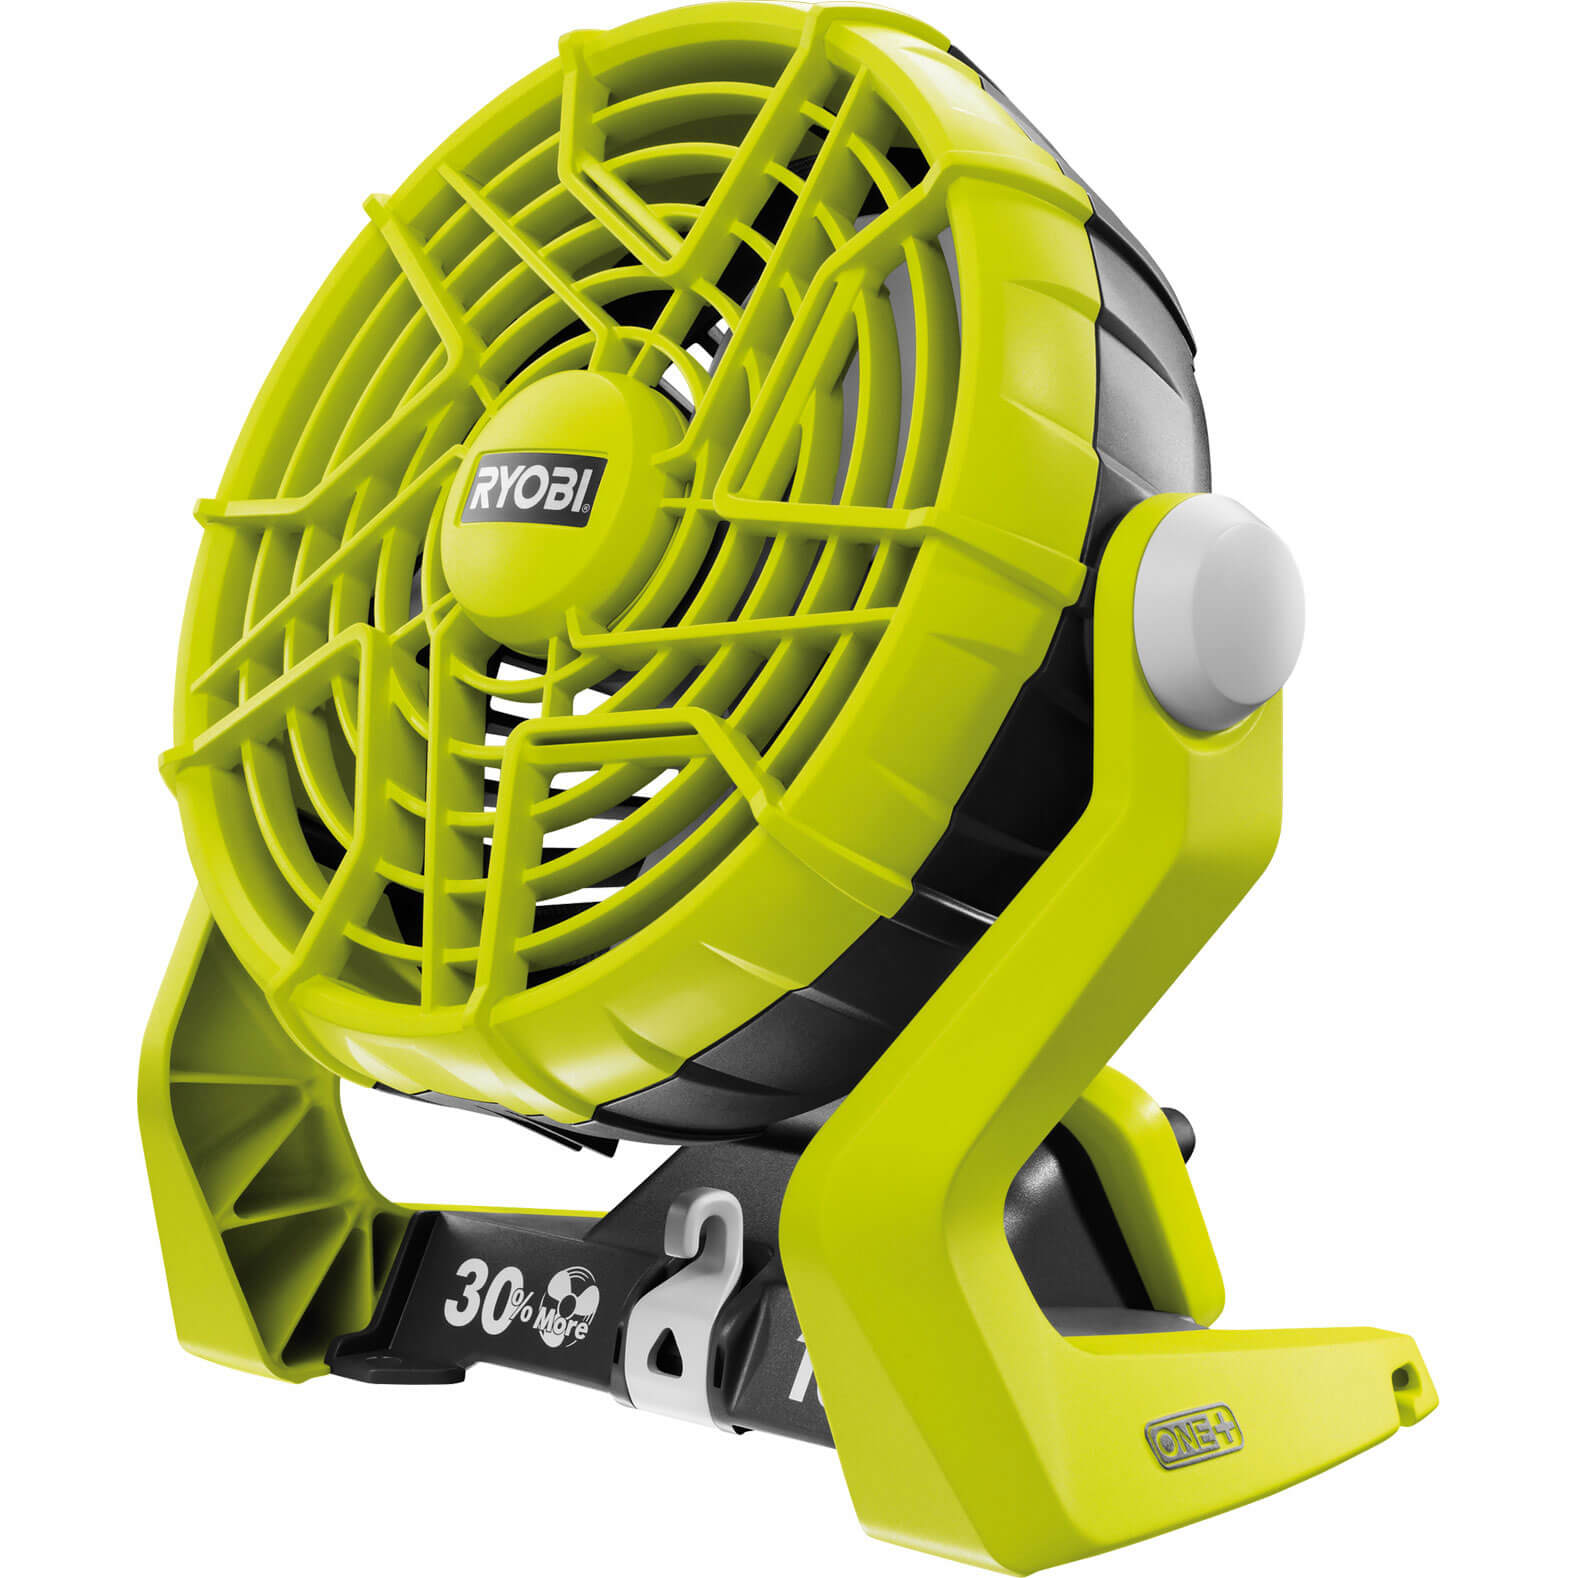 Image of Ryobi R18F ONE+ 18v Cordless Fan No Batteries No Charger No Case